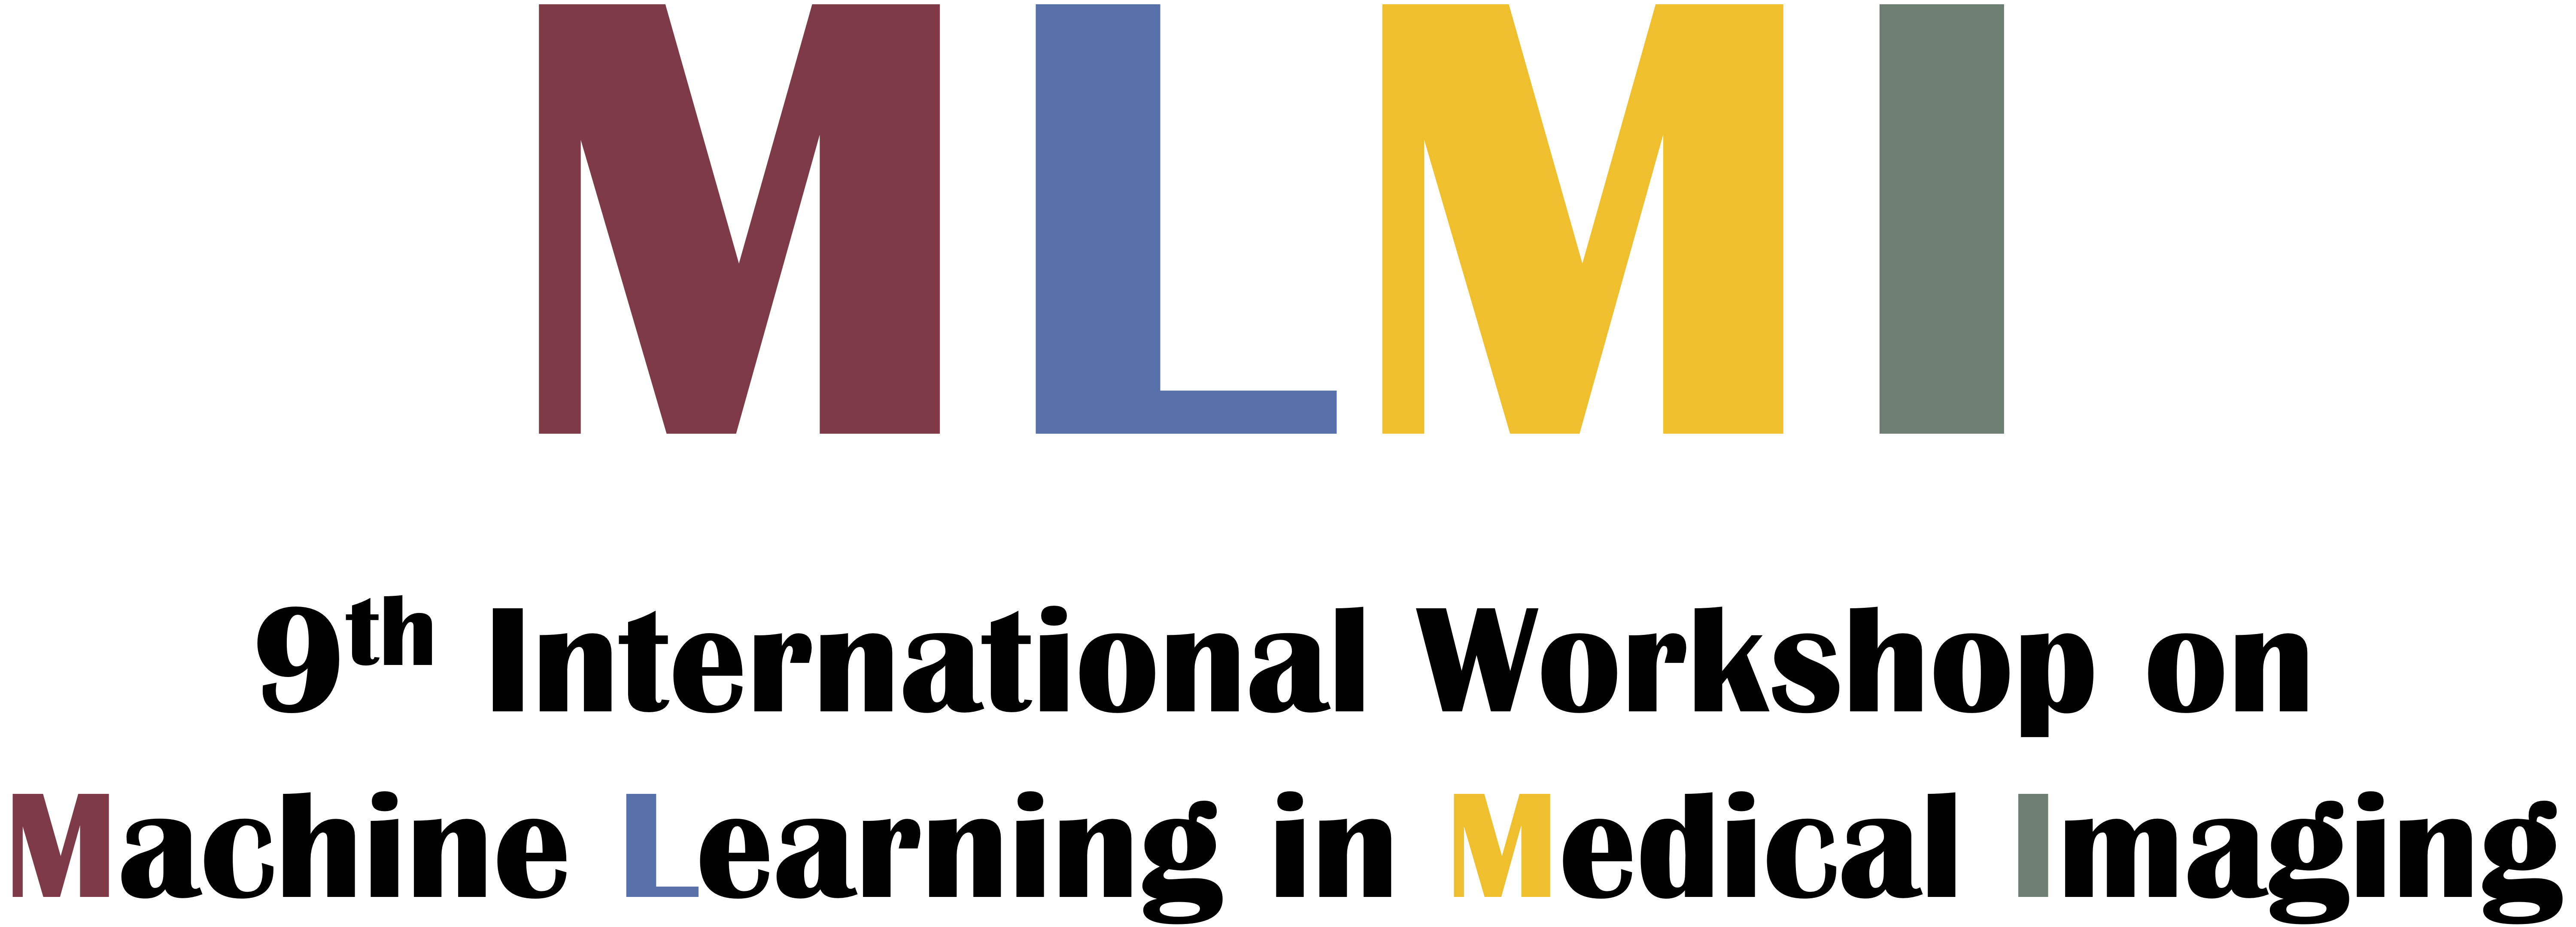 9th International Conference on Machine Learning in Medical Imaging (MLMI 2018)